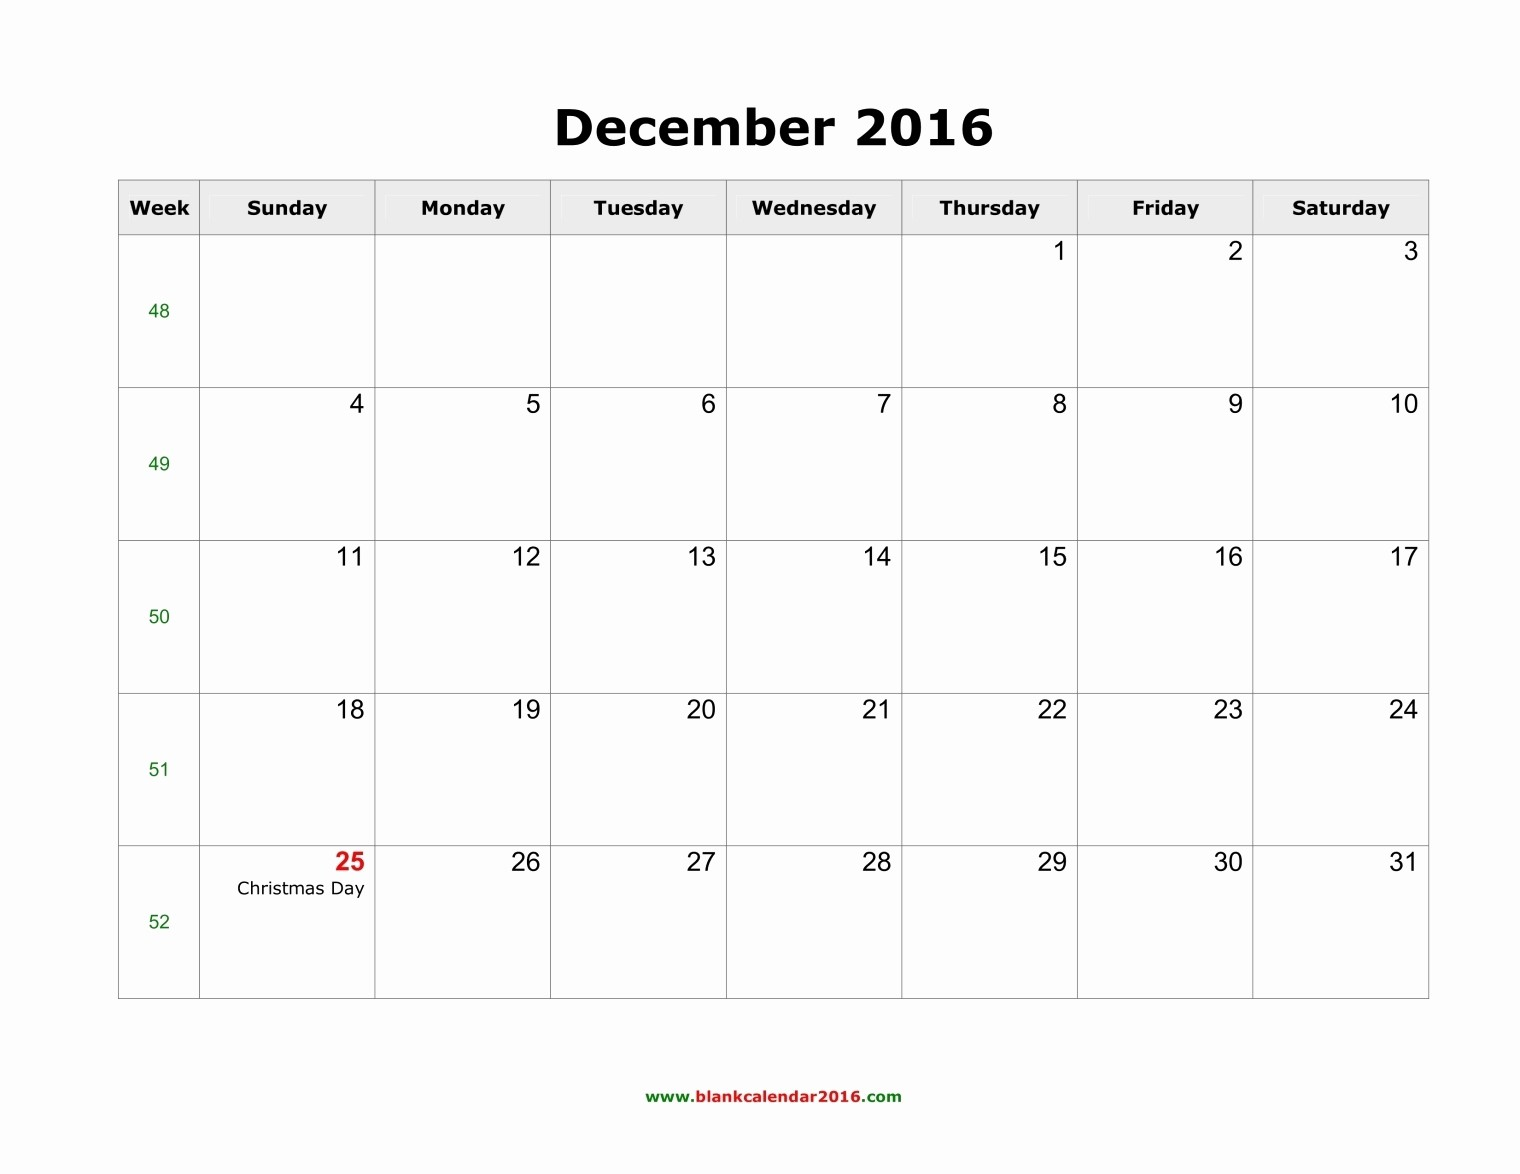 Blank December Calendar 2016 Printable Fresh December 2016 Calendar Printable with Holidays – Templates